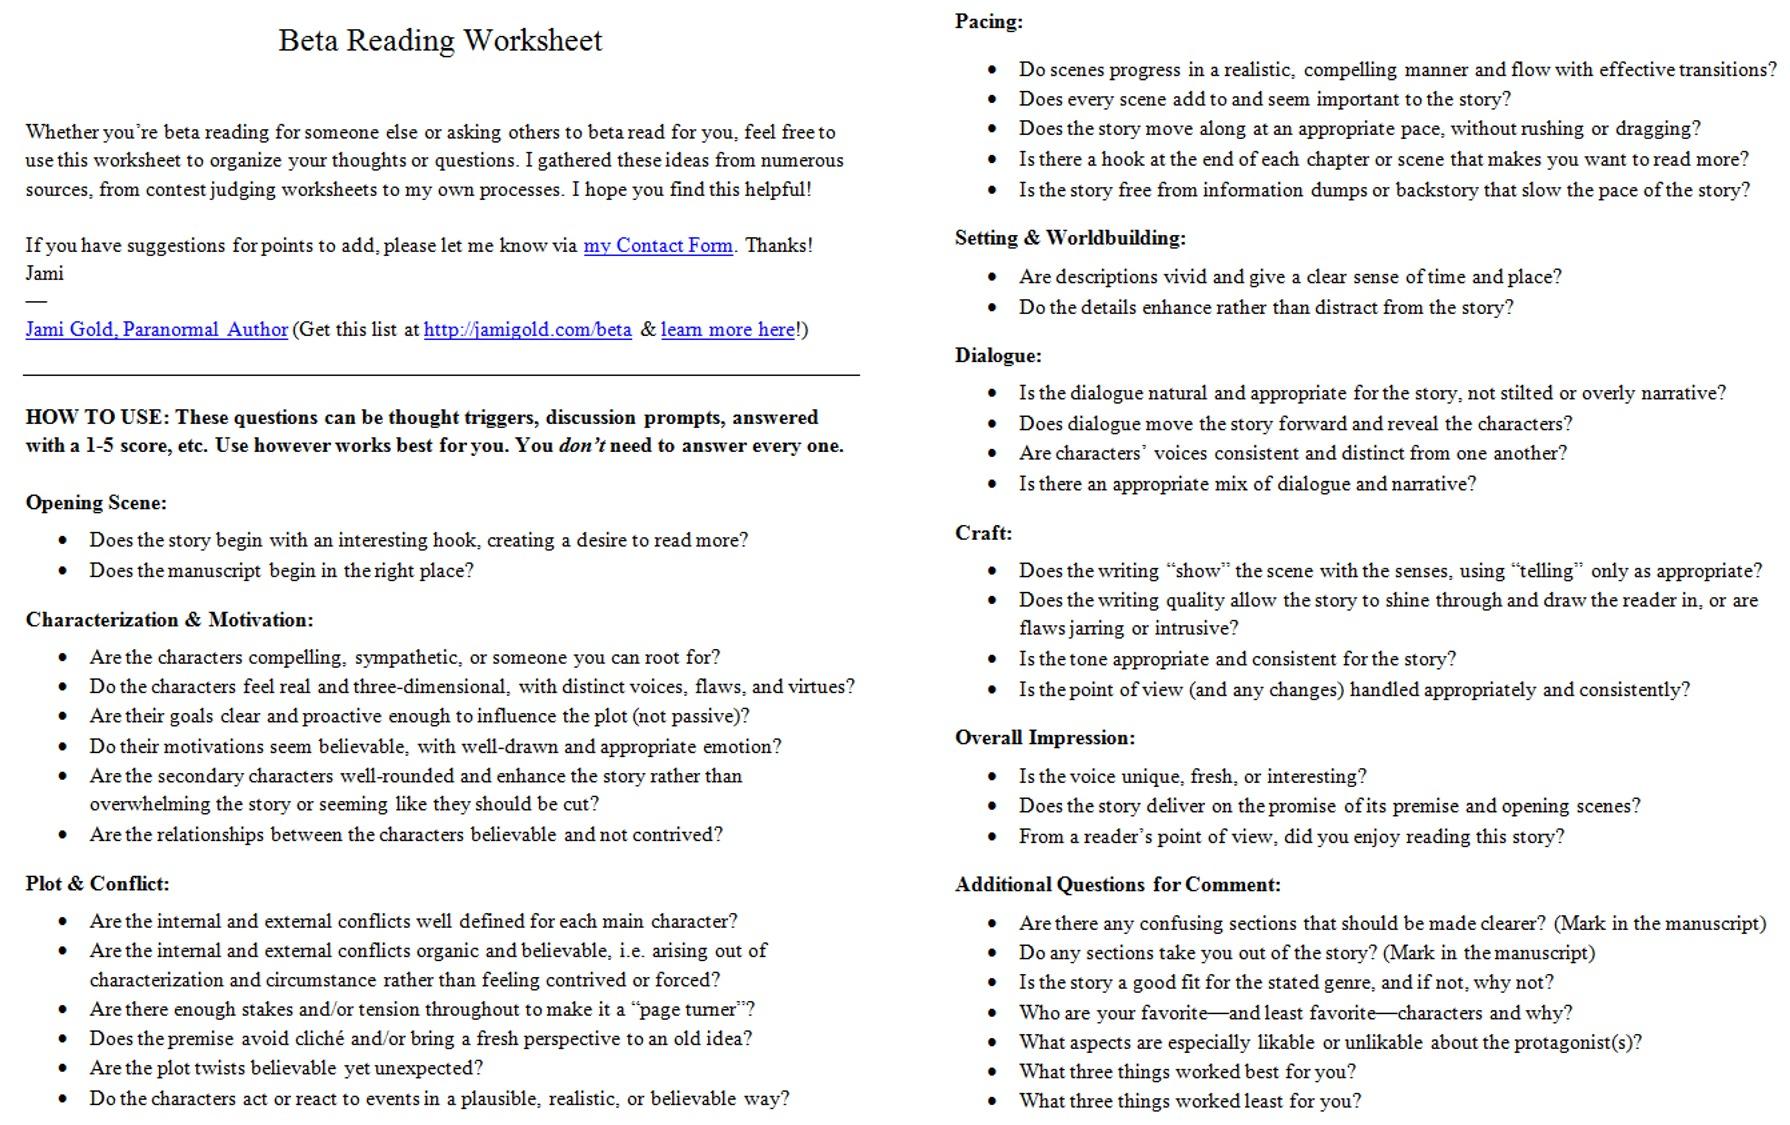 Aldiablosus  Stunning Worksheets For Writers  Jami Gold Paranormal Author With Fascinating Screen Shot Of The Twopage Beta Reading Worksheet With Endearing Handwriting Maker Free Worksheets Also Types Of Sentences According To Structure Worksheets In Addition Pumpkin Addition Worksheets And Types Of Simple Machines Worksheet As Well As Igneous Rock Worksheet Additionally Office  Cost Comparison Worksheet From Jamigoldcom With Aldiablosus  Fascinating Worksheets For Writers  Jami Gold Paranormal Author With Endearing Screen Shot Of The Twopage Beta Reading Worksheet And Stunning Handwriting Maker Free Worksheets Also Types Of Sentences According To Structure Worksheets In Addition Pumpkin Addition Worksheets From Jamigoldcom